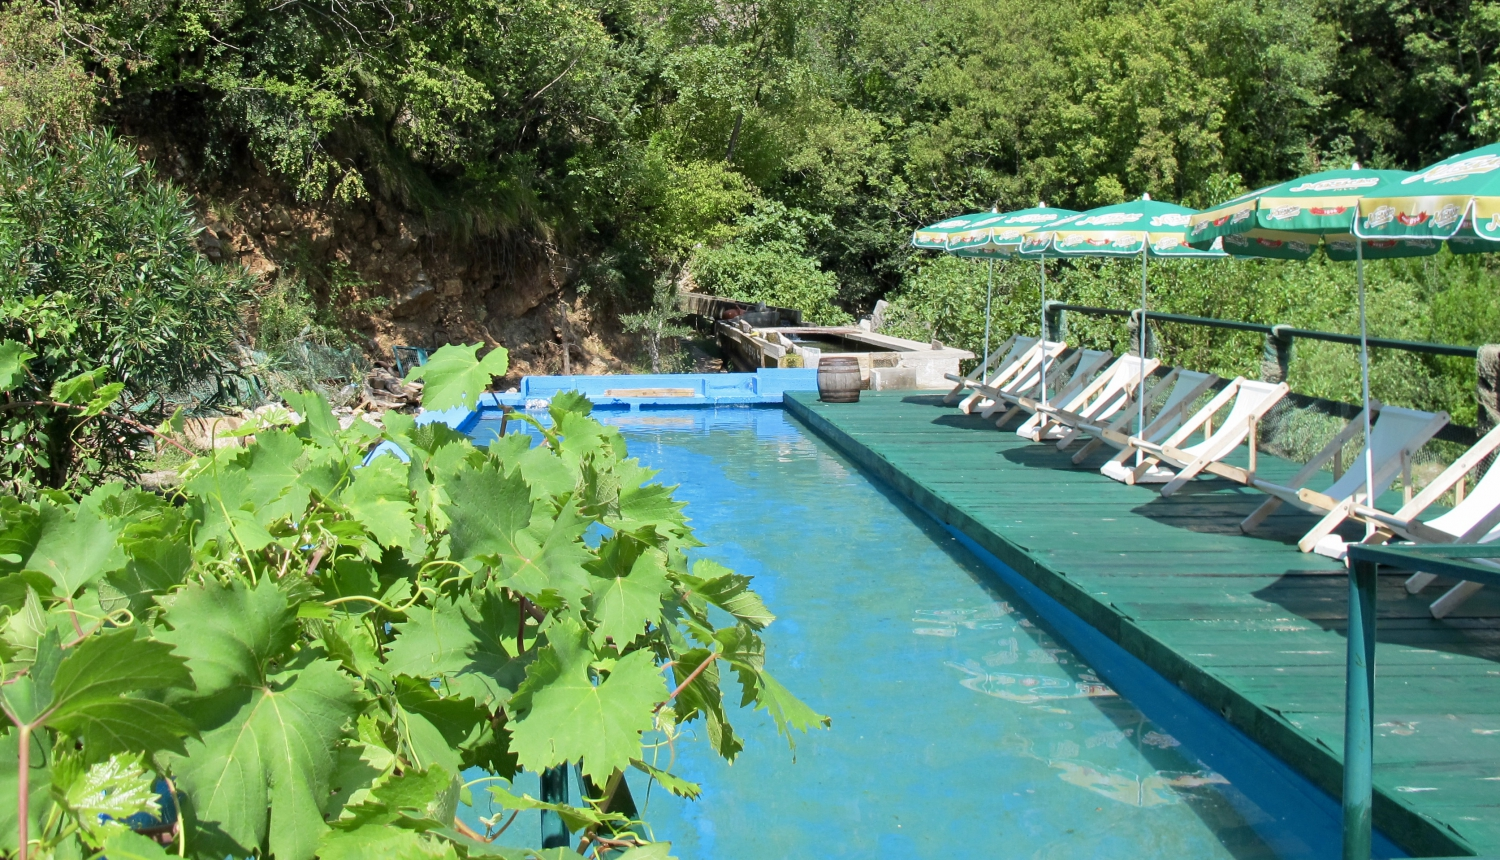 Krapina Fish Farm & Restaurant